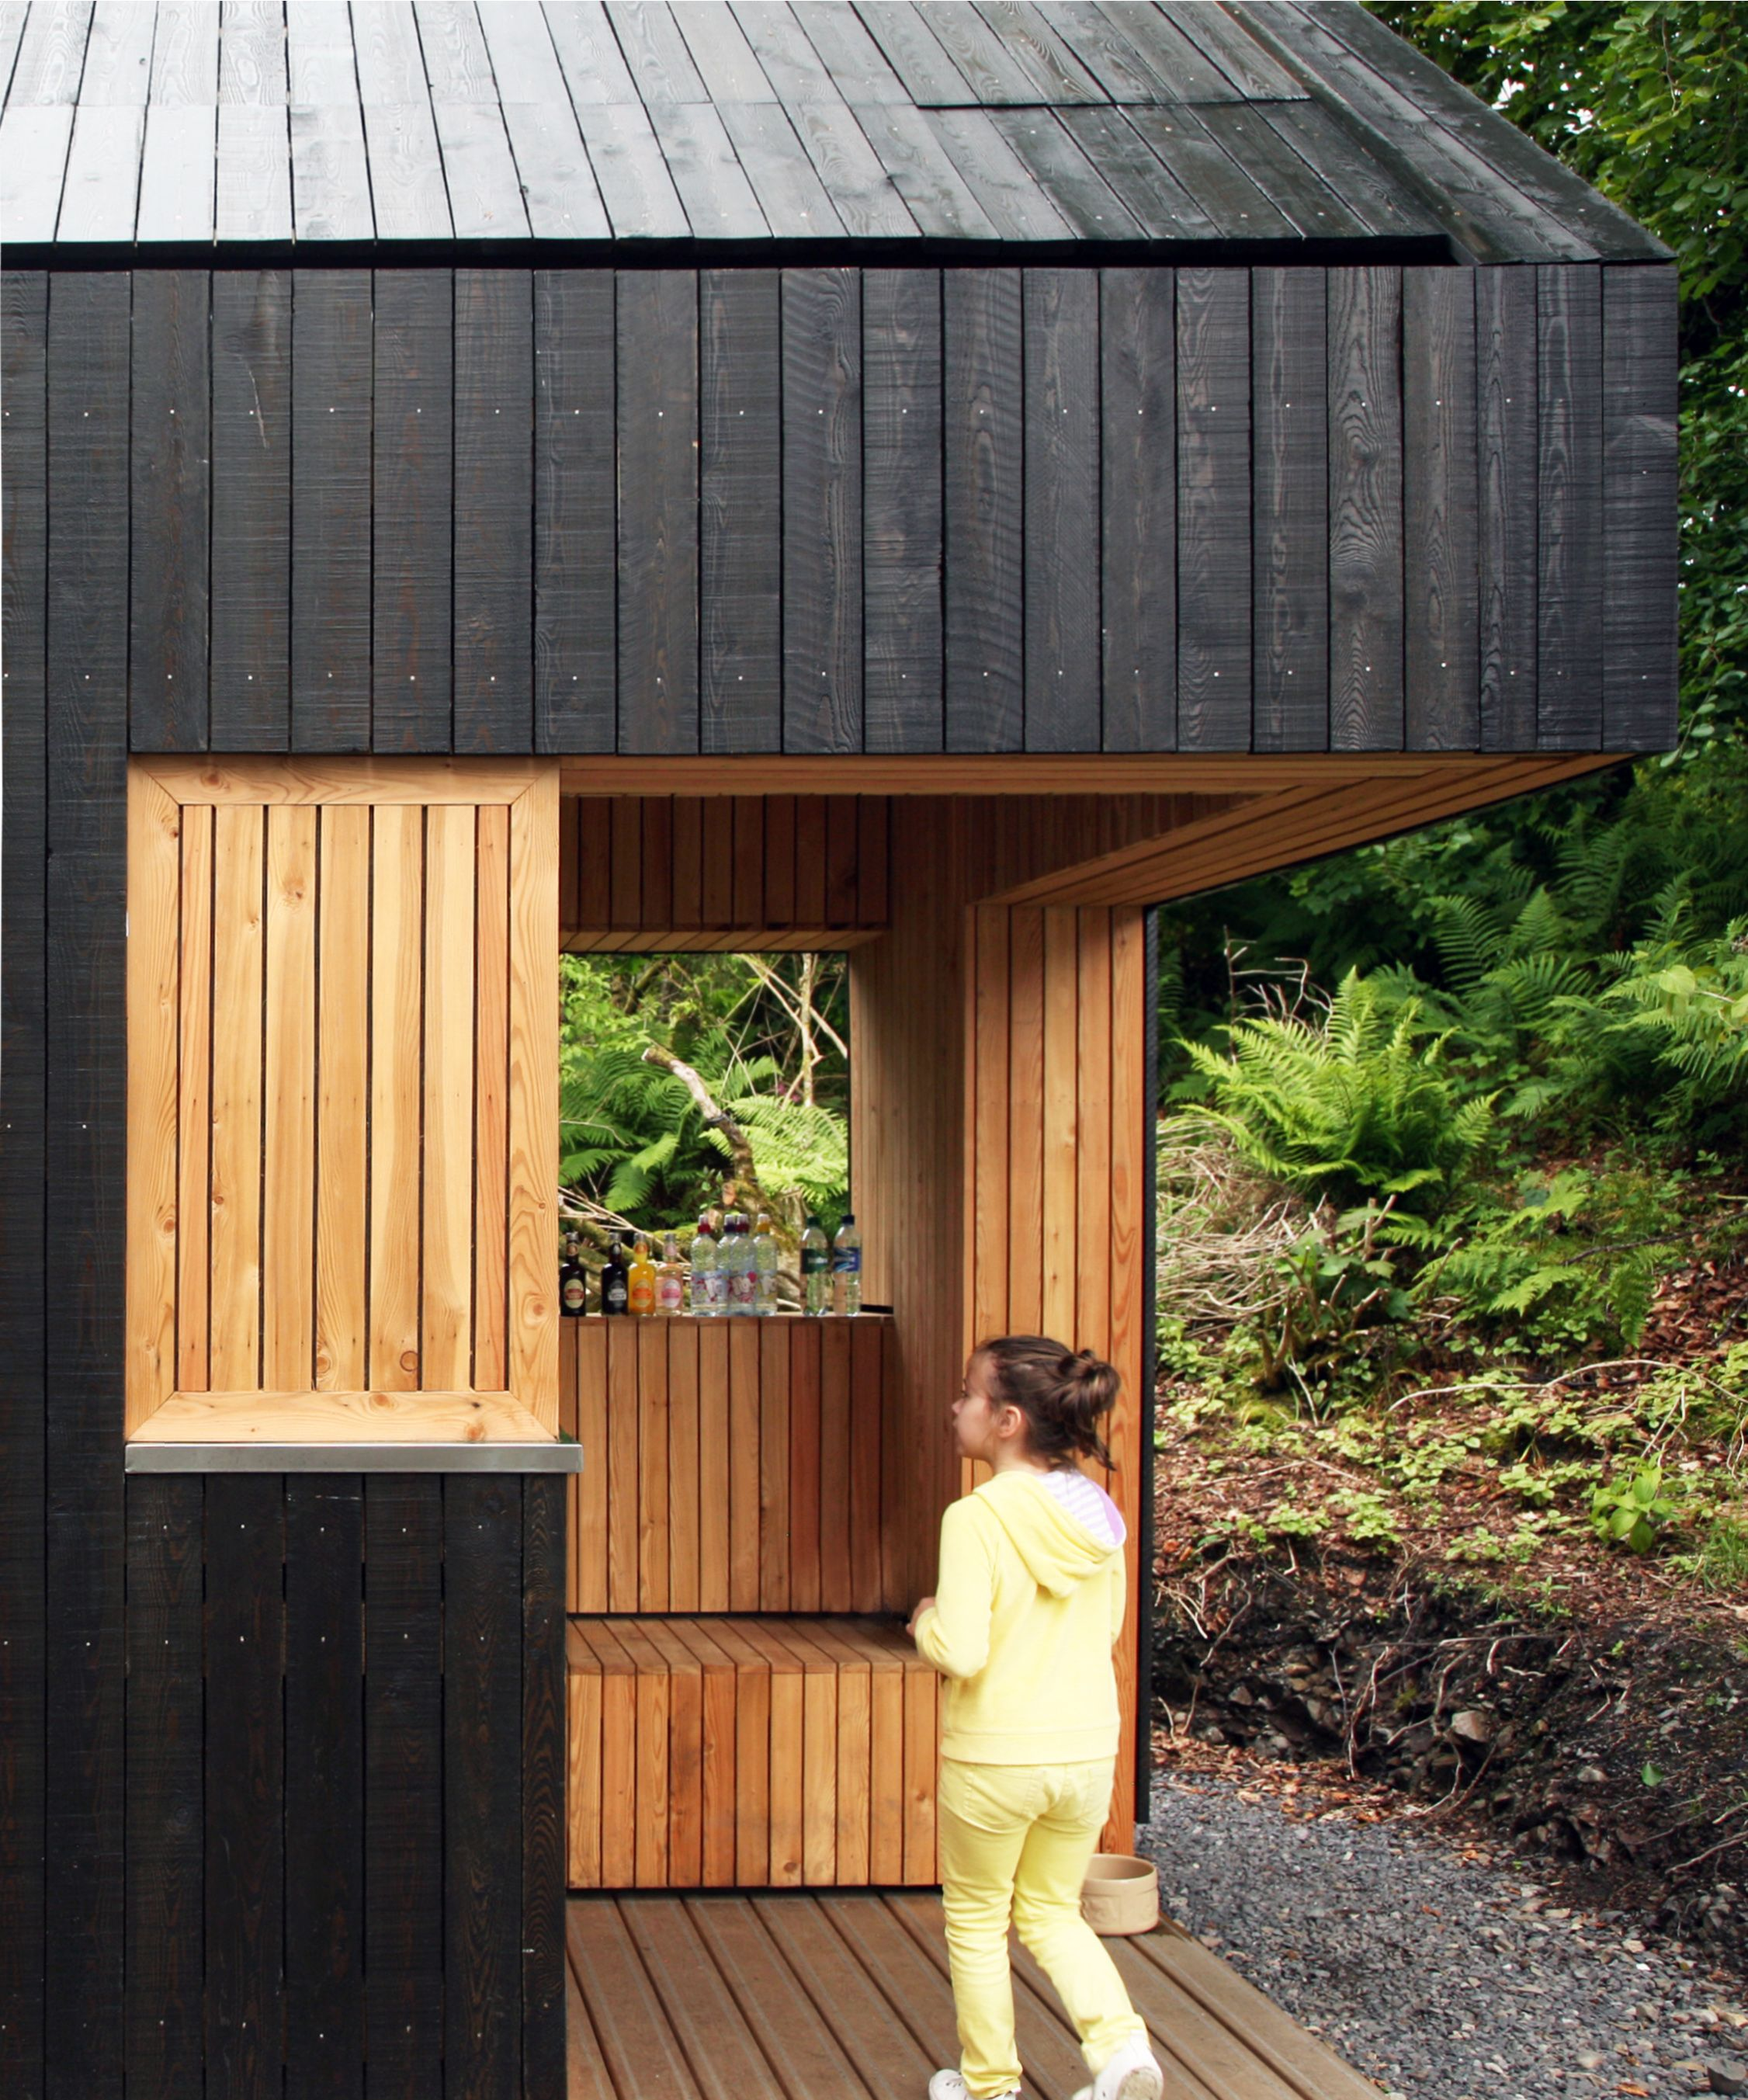 Timber Clad: Russwood's Charred Larch Uses European Larch Timber Which